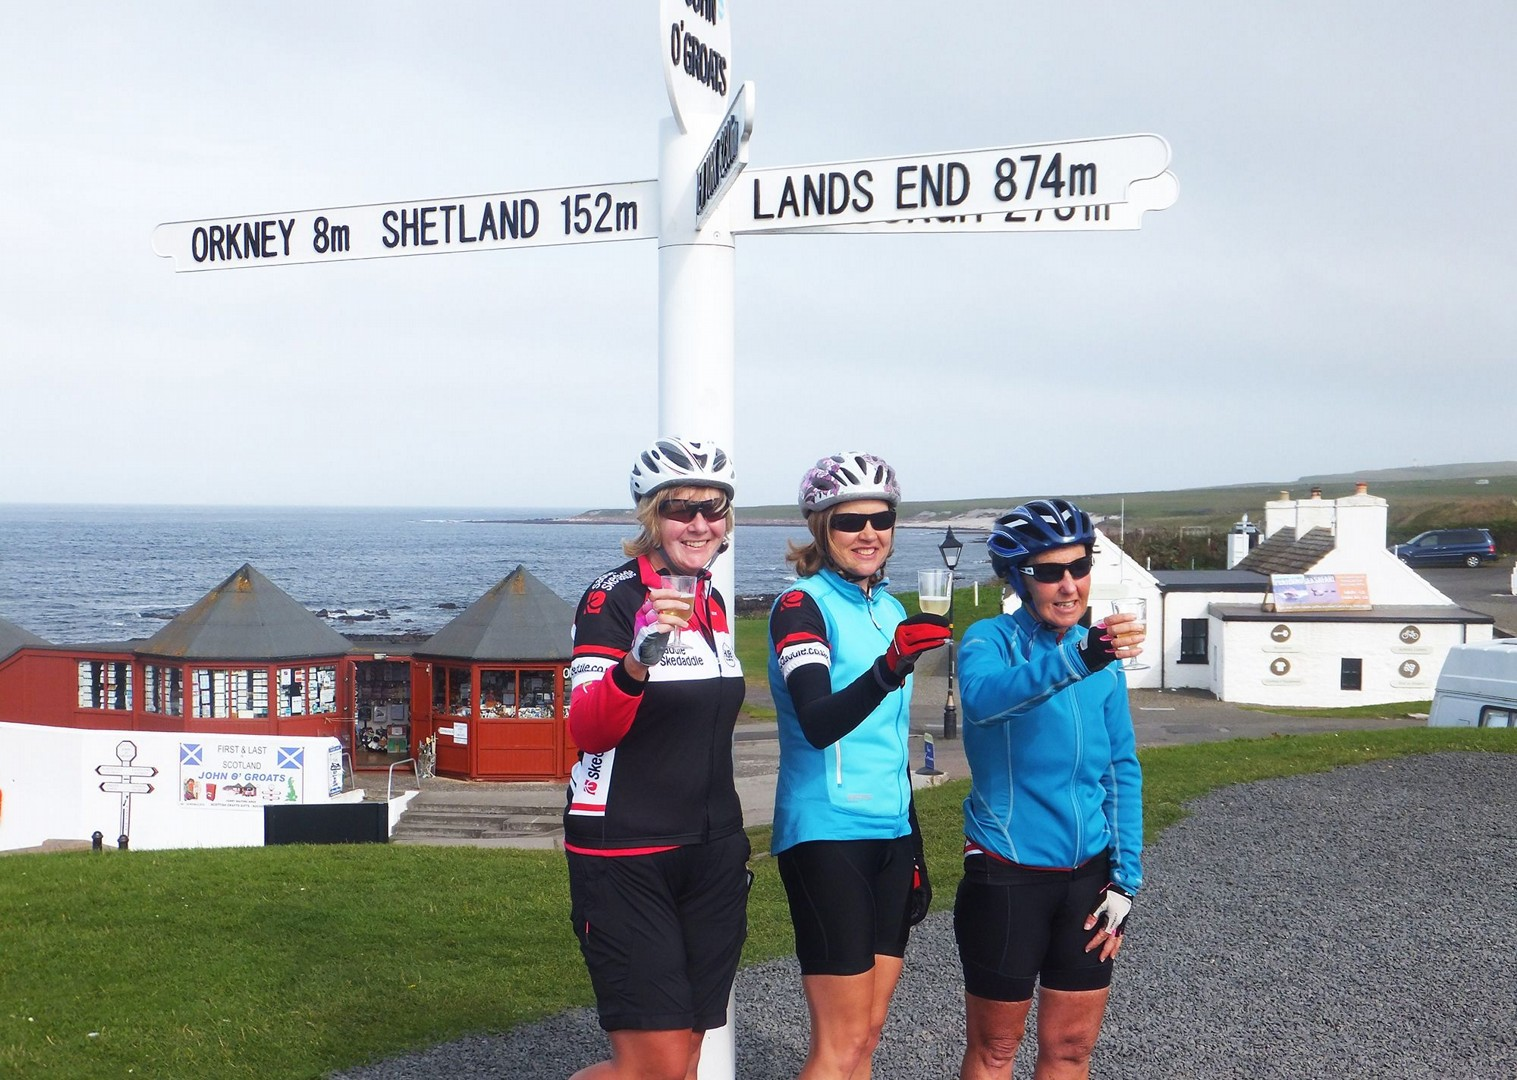 iconic-journeys-skedaddle-group-cycling.jpg - UK - Land's End to John O'Groats Explorer (22 days) - Guided Cycling Holiday - Road Cycling